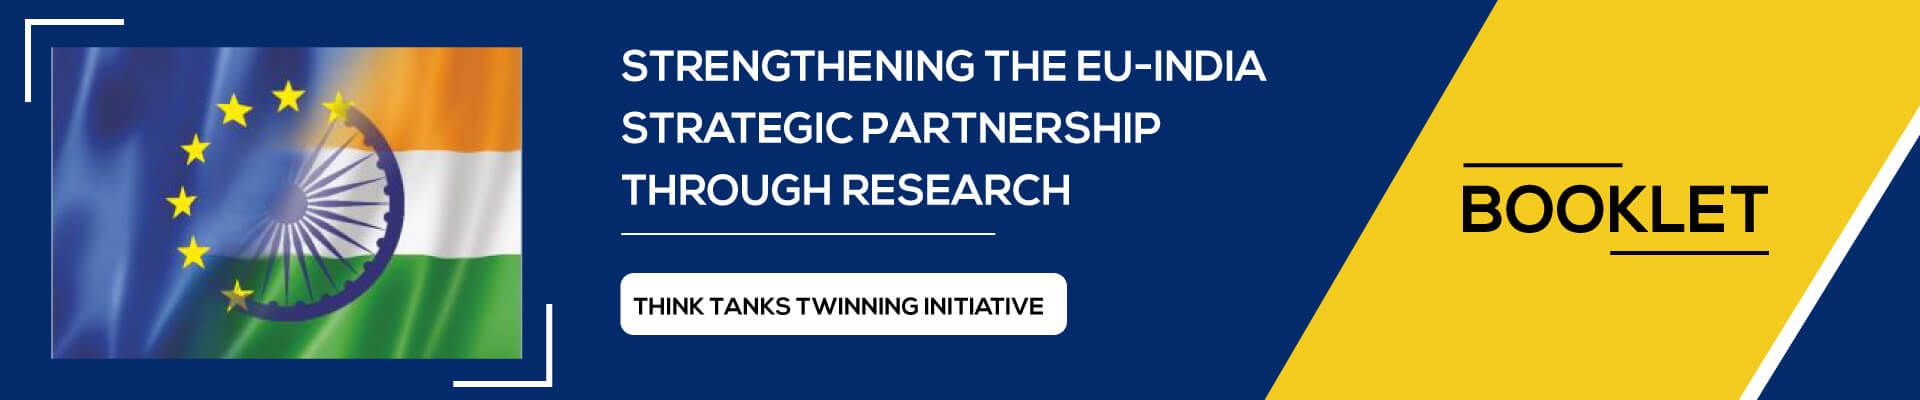 EU India Think Tanks Twinning Initiative – Booklet